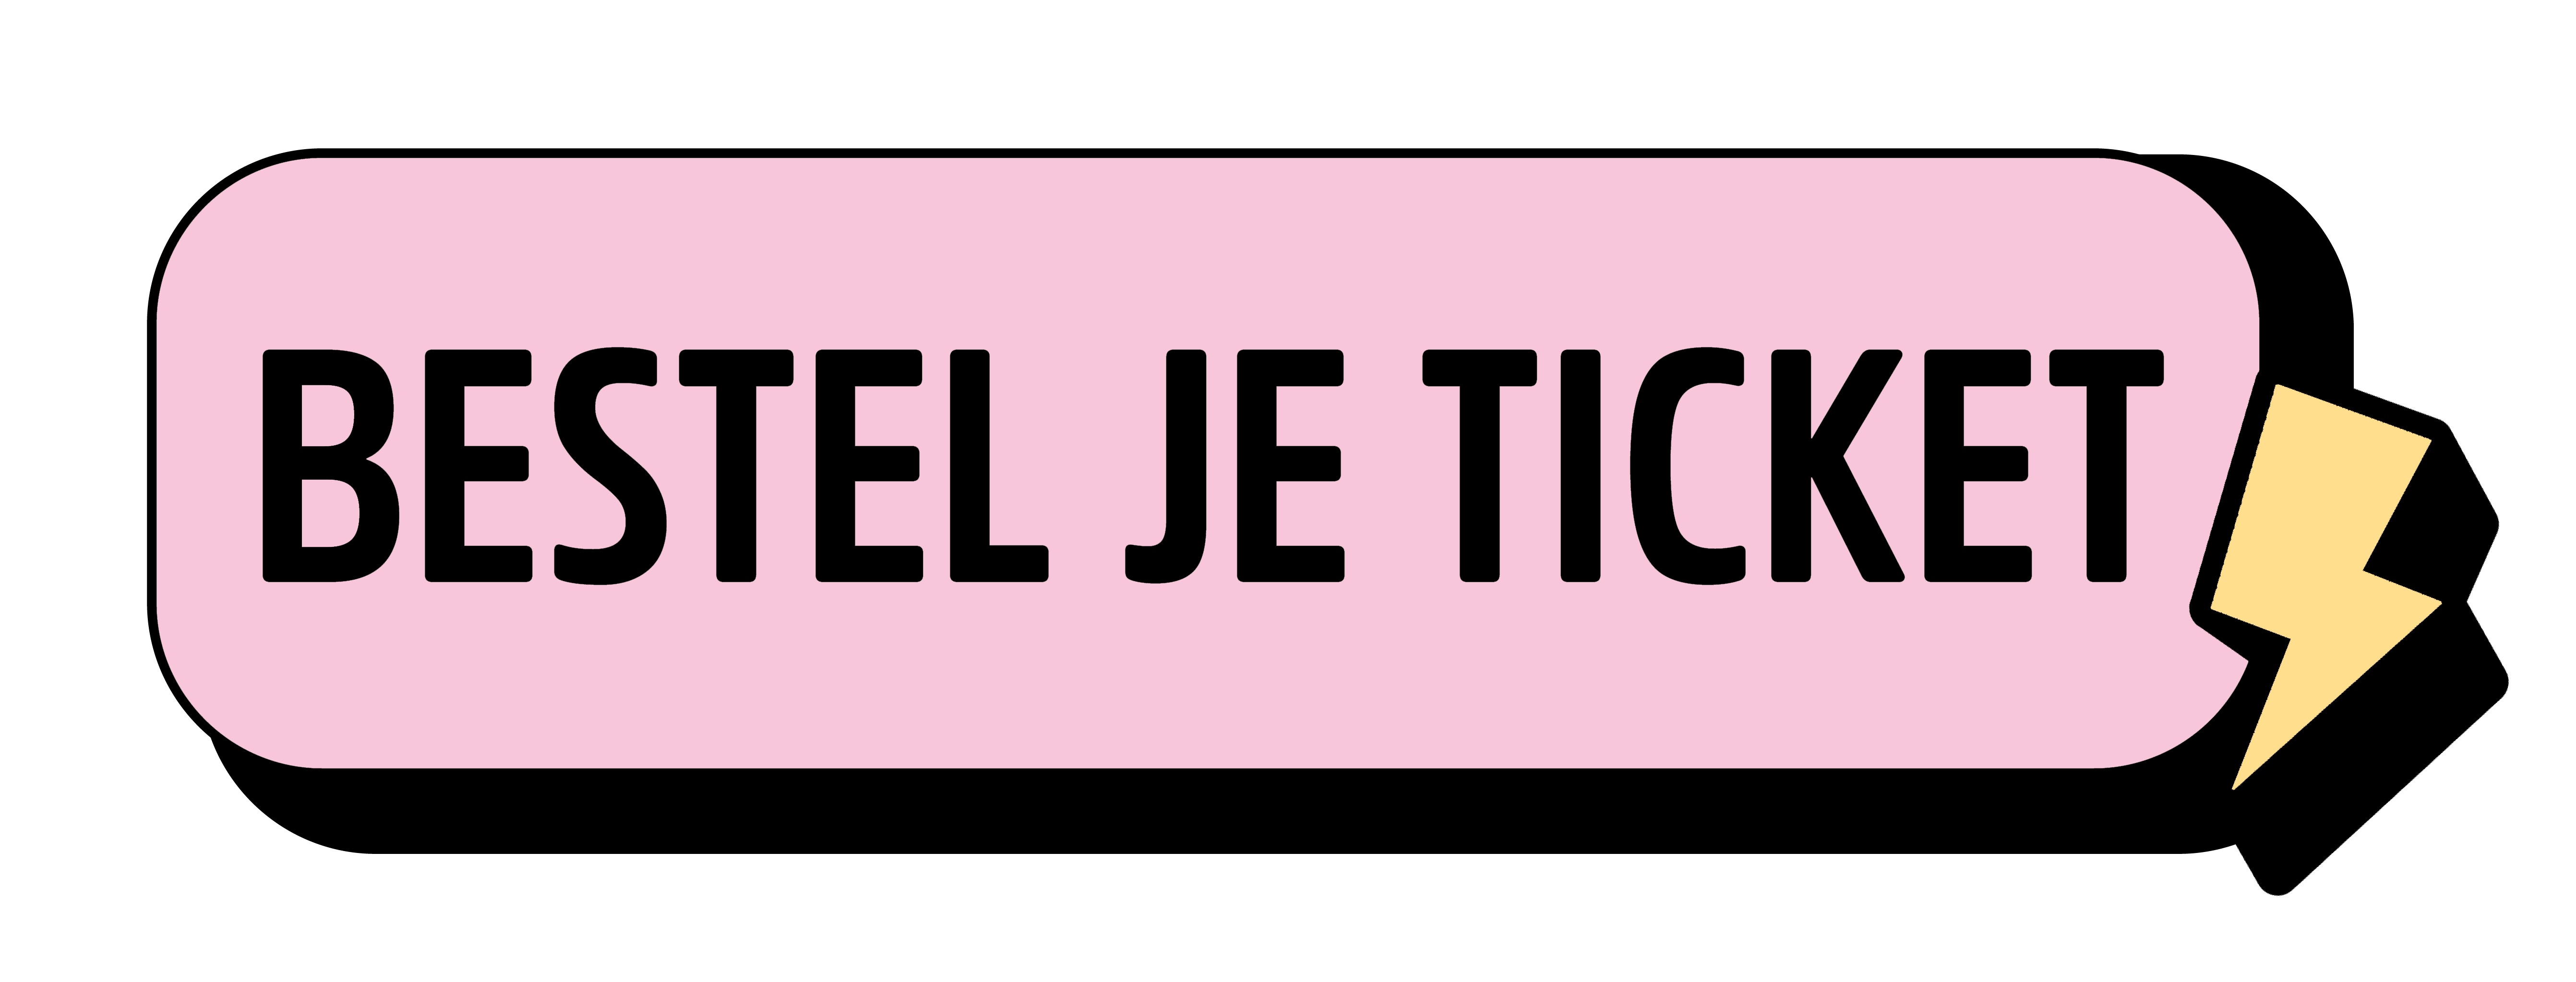 ticket-05-06.png